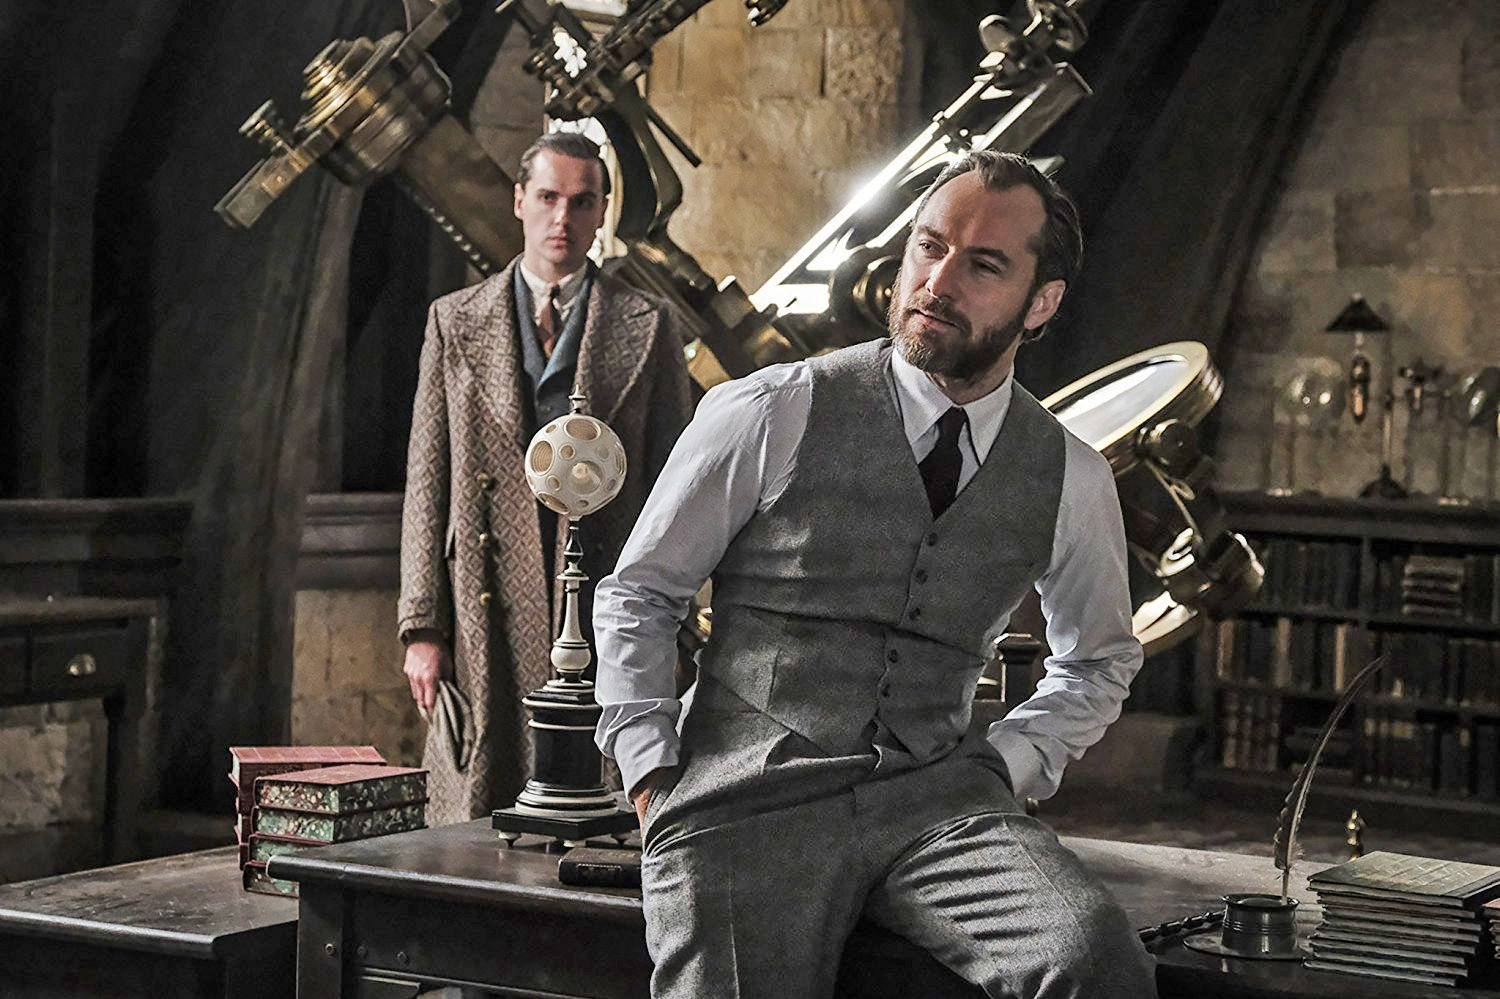 New pictures of Jude Law's young Dumbledore in Fantastic Beasts: The Crimes Of Grindelwald